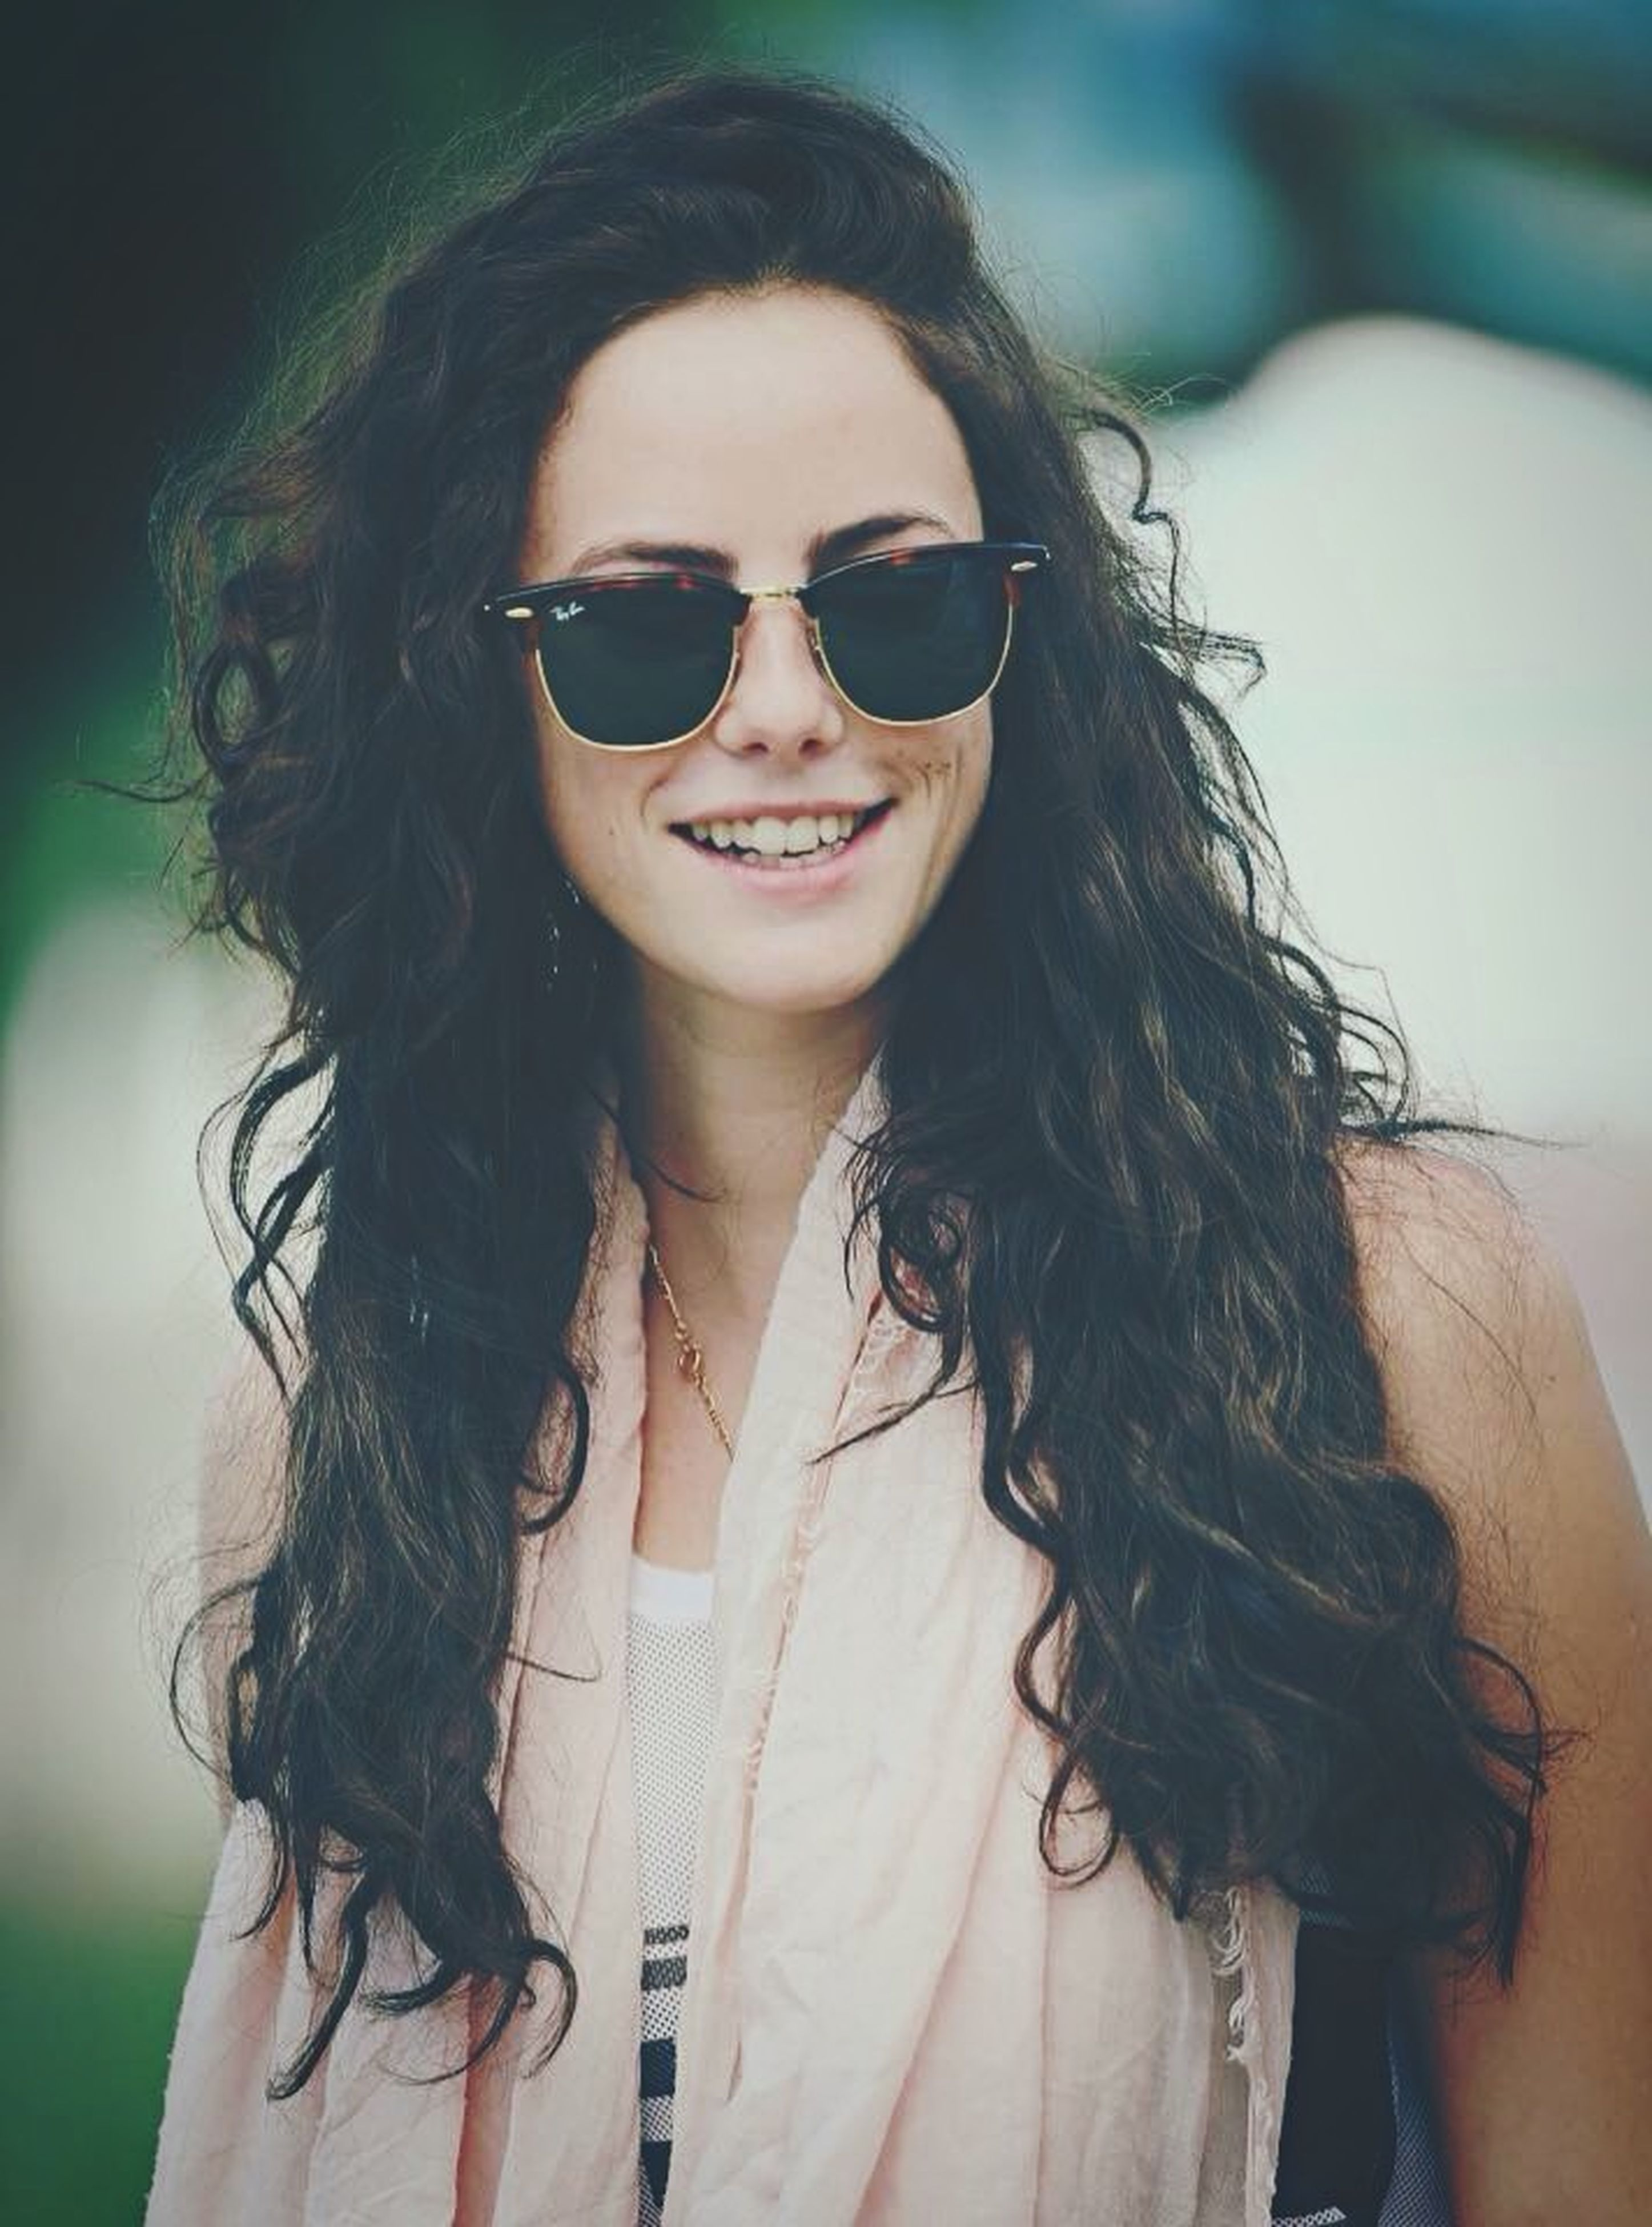 young adult, lifestyles, young women, portrait, looking at camera, front view, person, leisure activity, long hair, casual clothing, sunglasses, focus on foreground, smiling, waist up, headshot, fashion, black hair